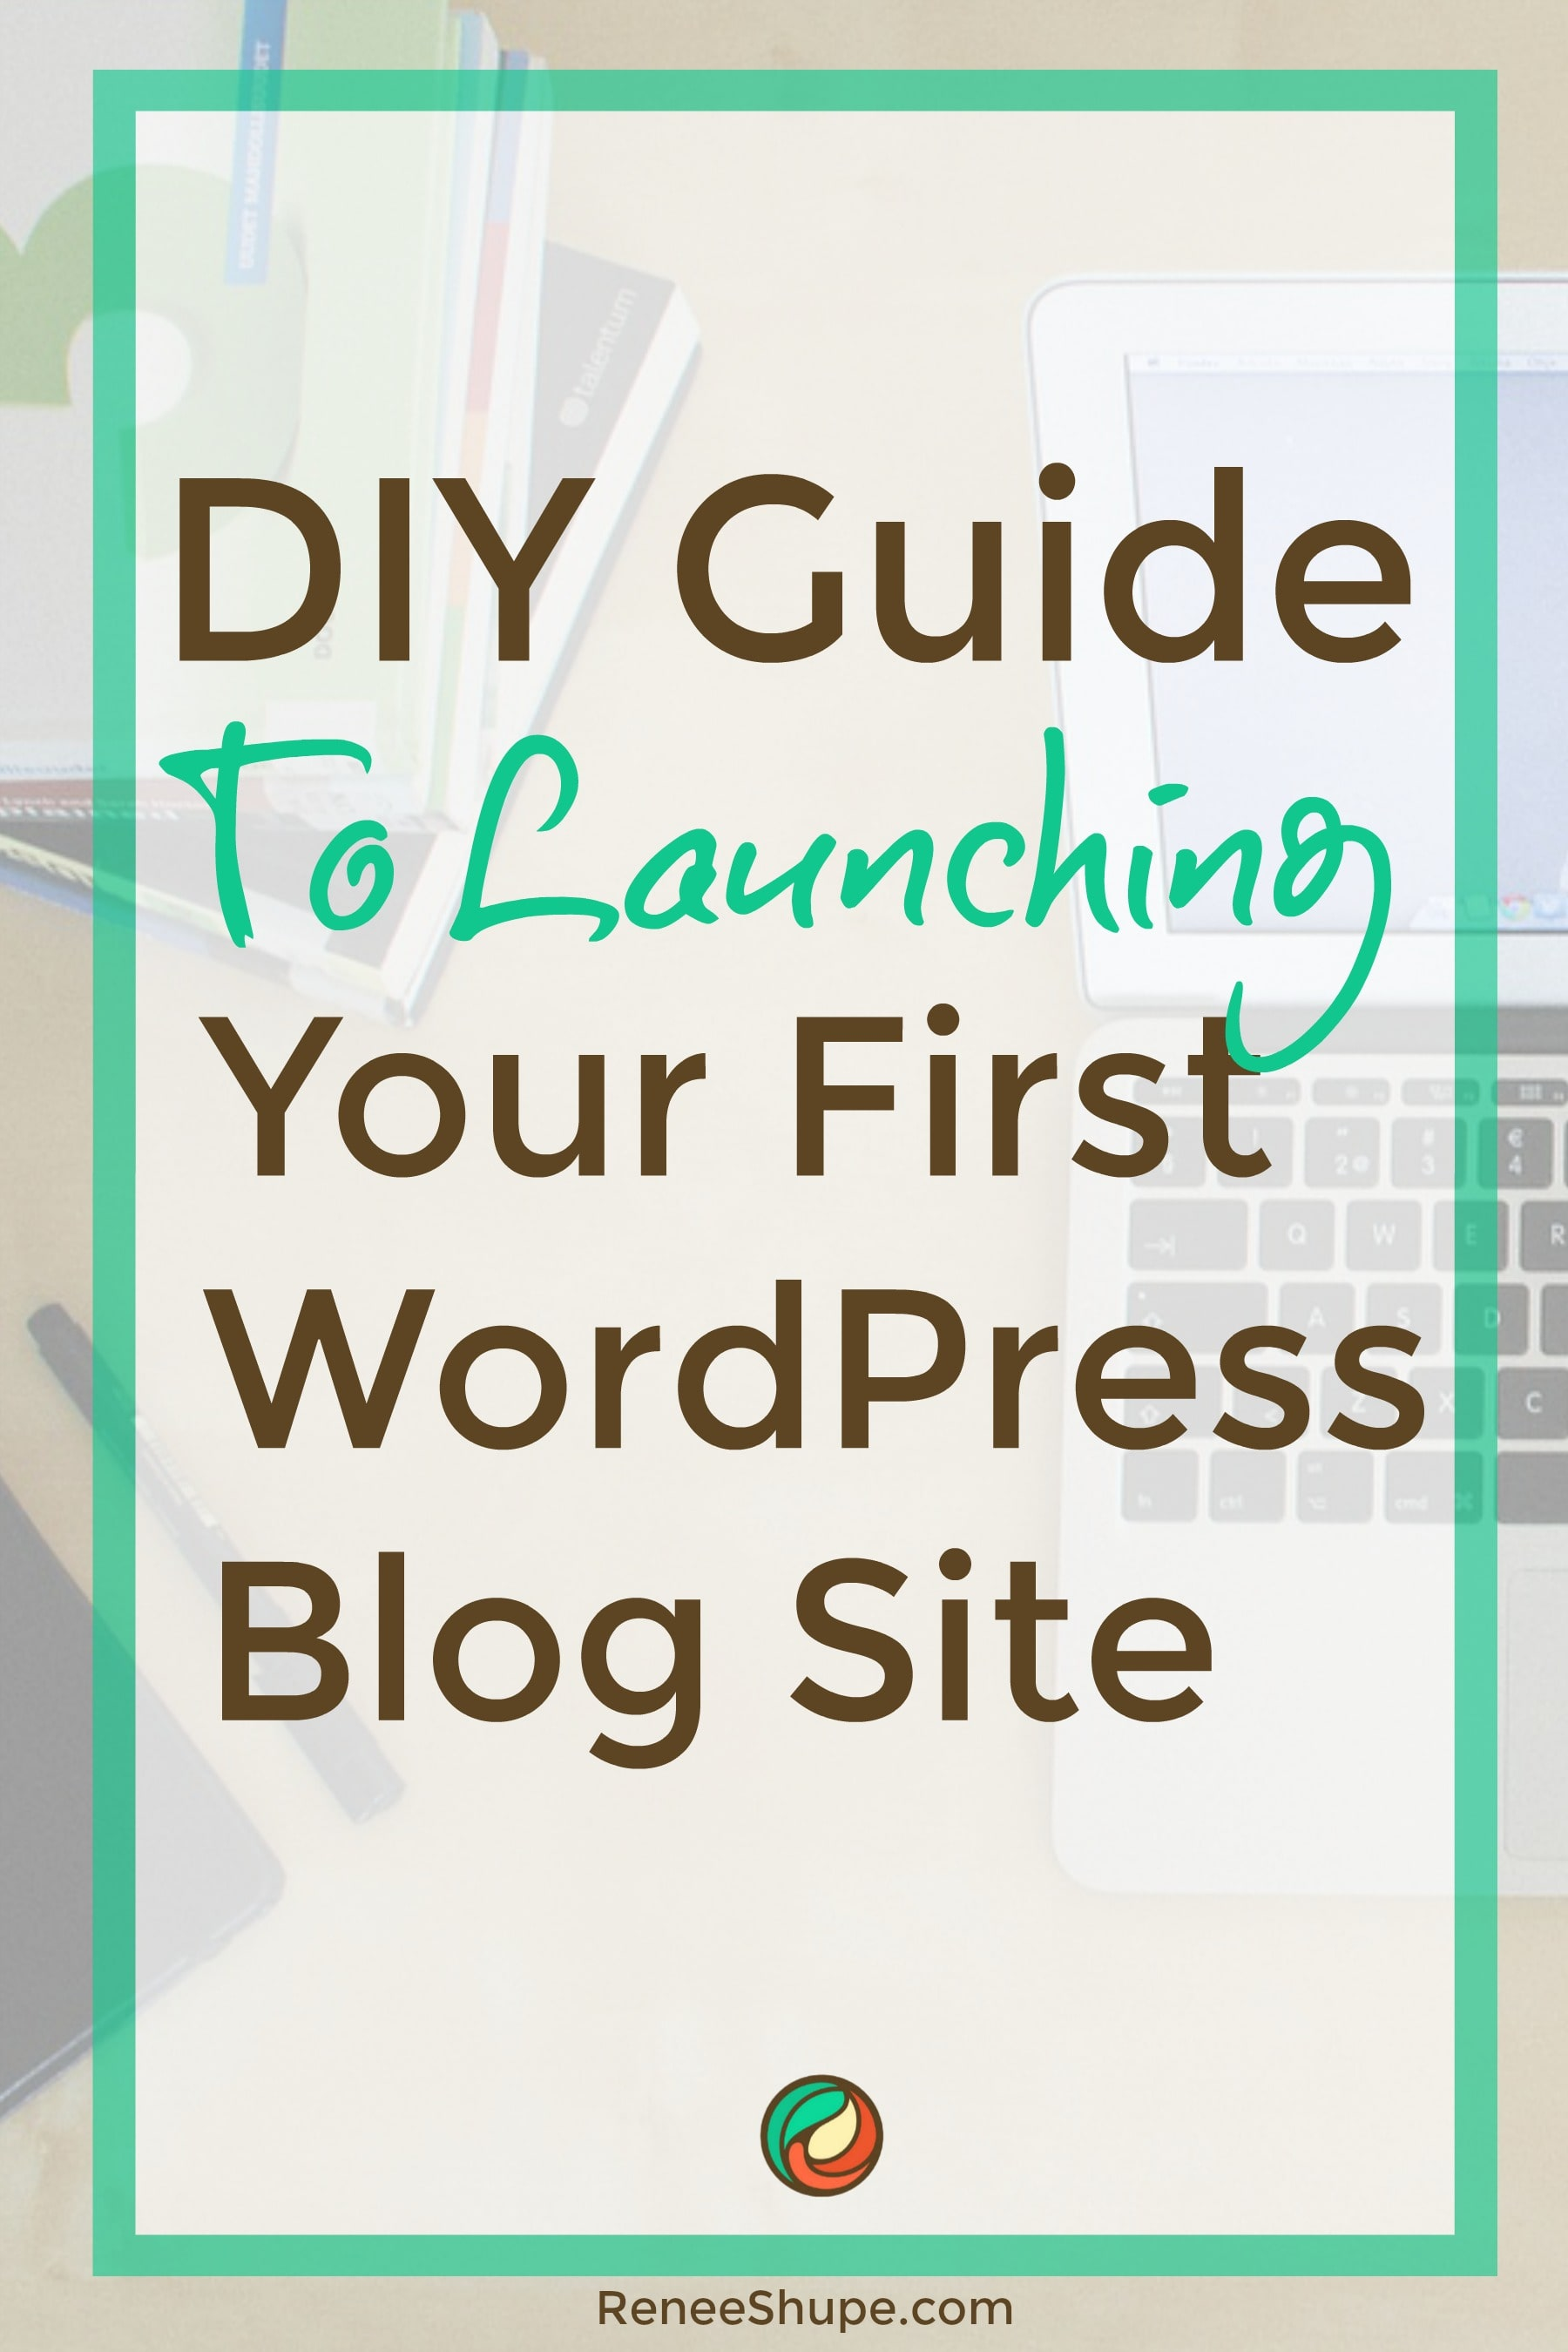 WordPress is the really the BEST platform for building a viable, sustainable & profitable business online.  This guide gives you the beginner steps to start.